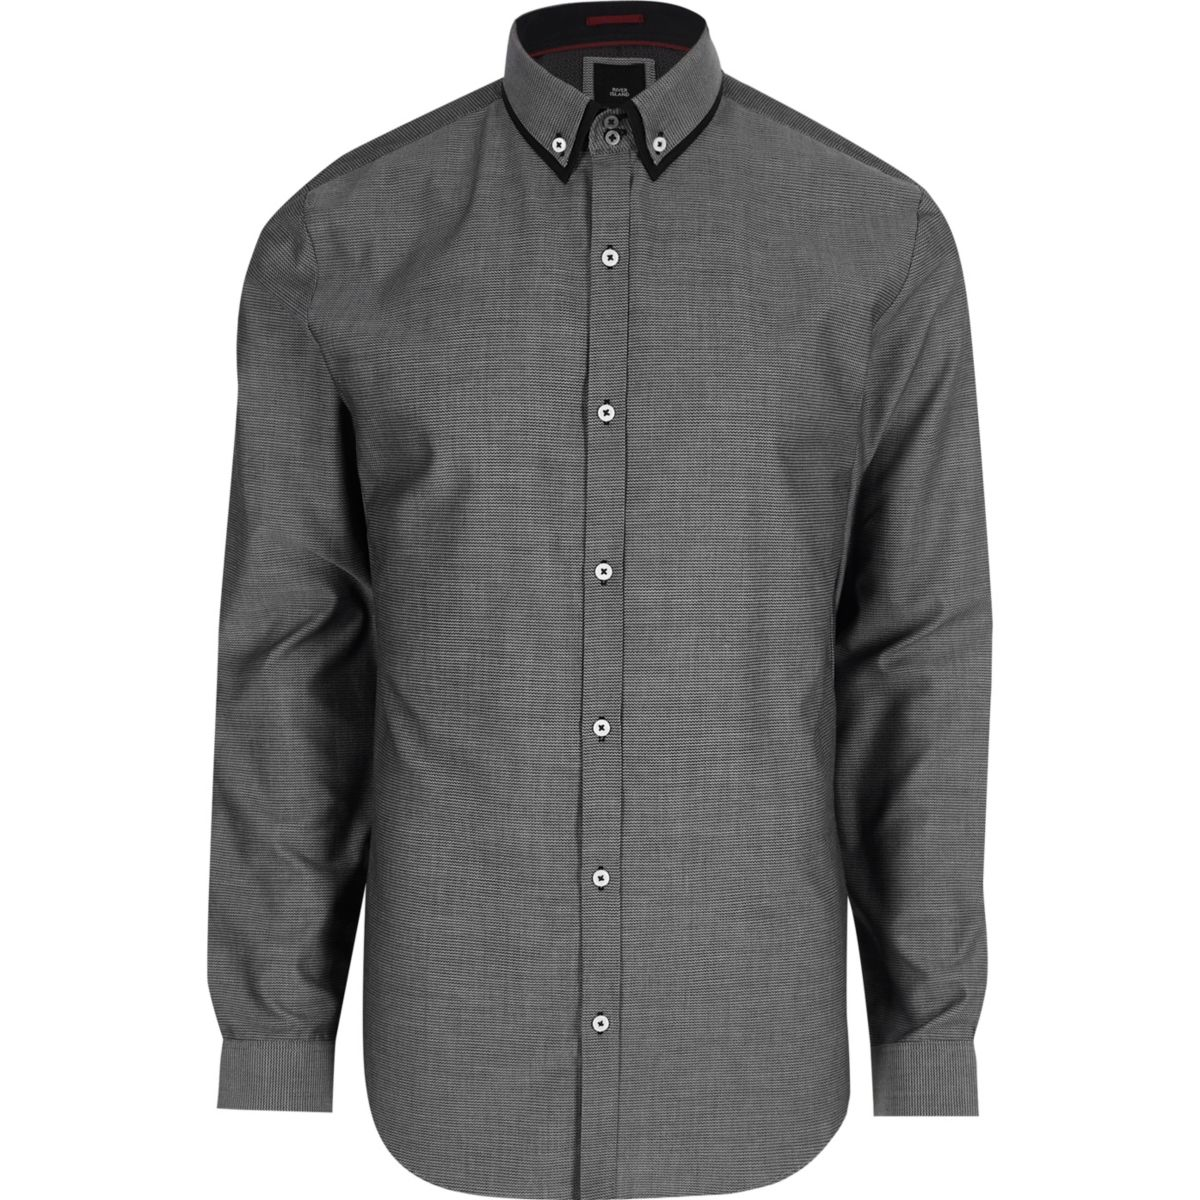 Grey double collar slim fit smart shirt